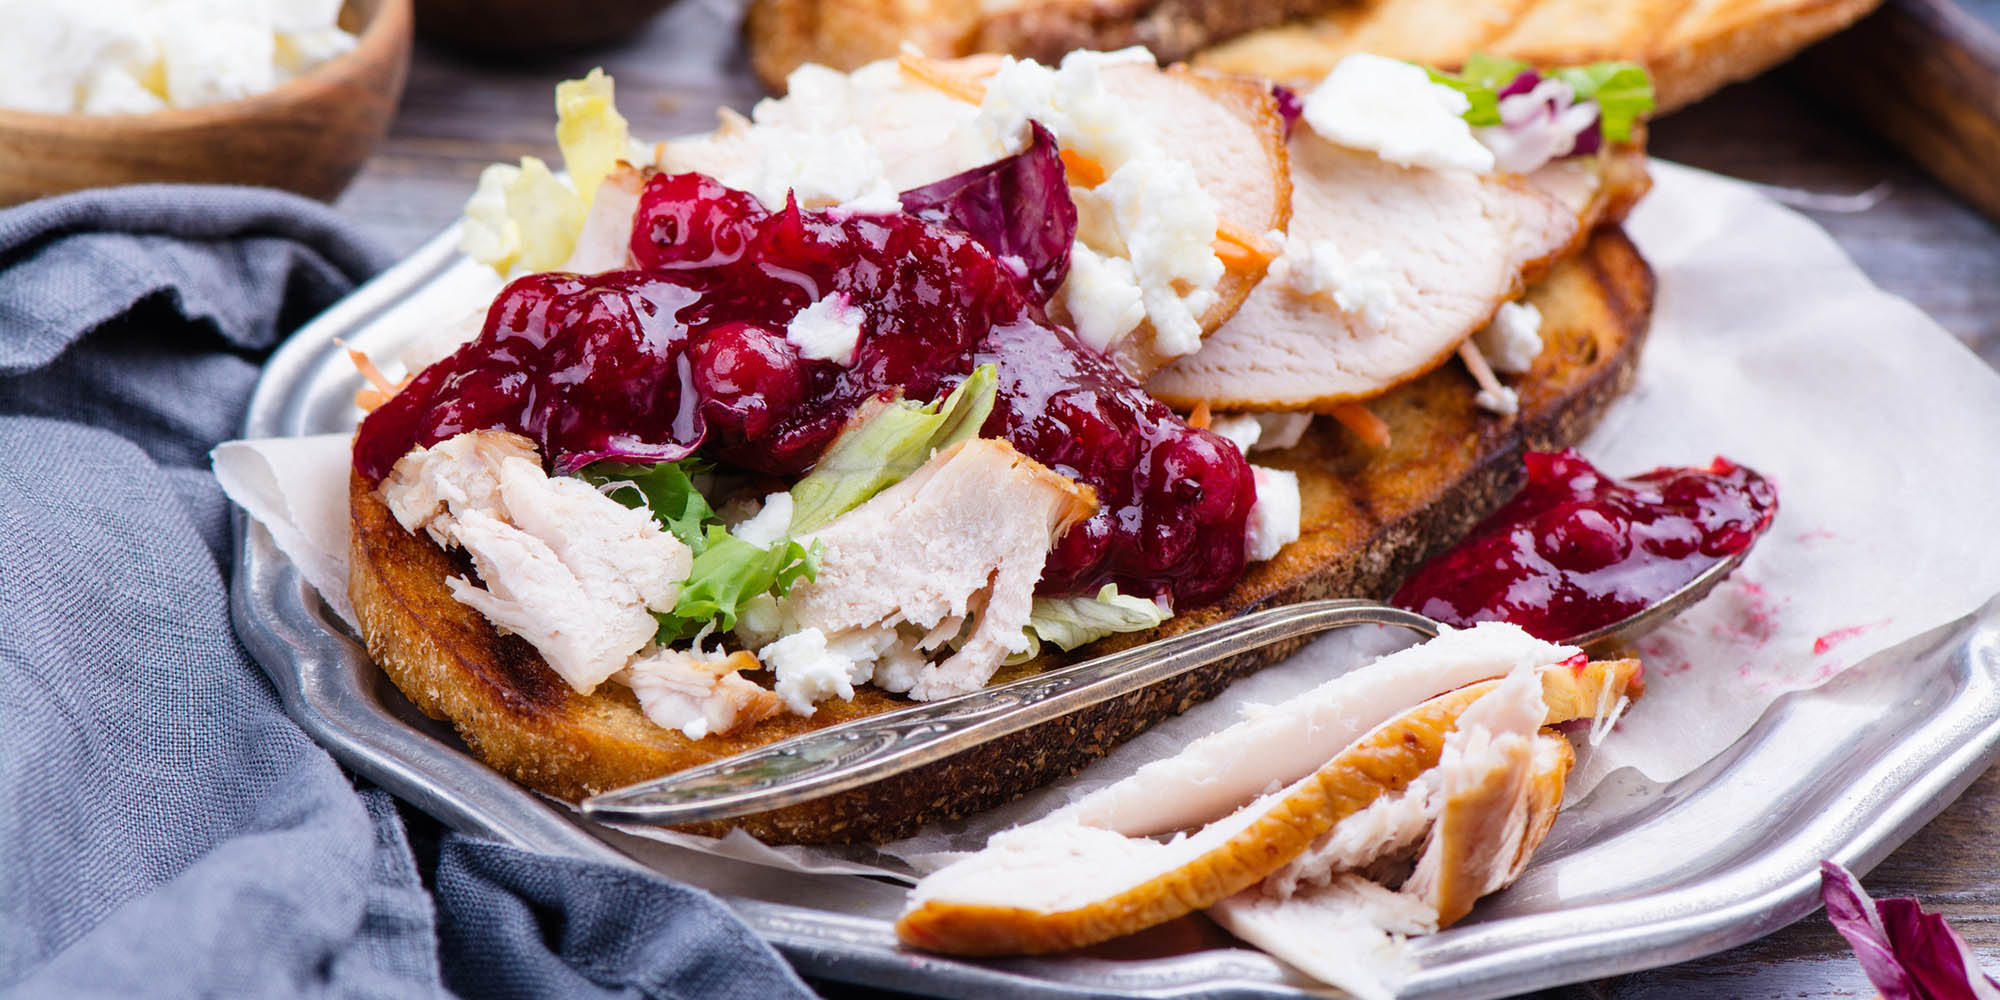 10 Healthy Ways to Use Thanksgiving Leftovers